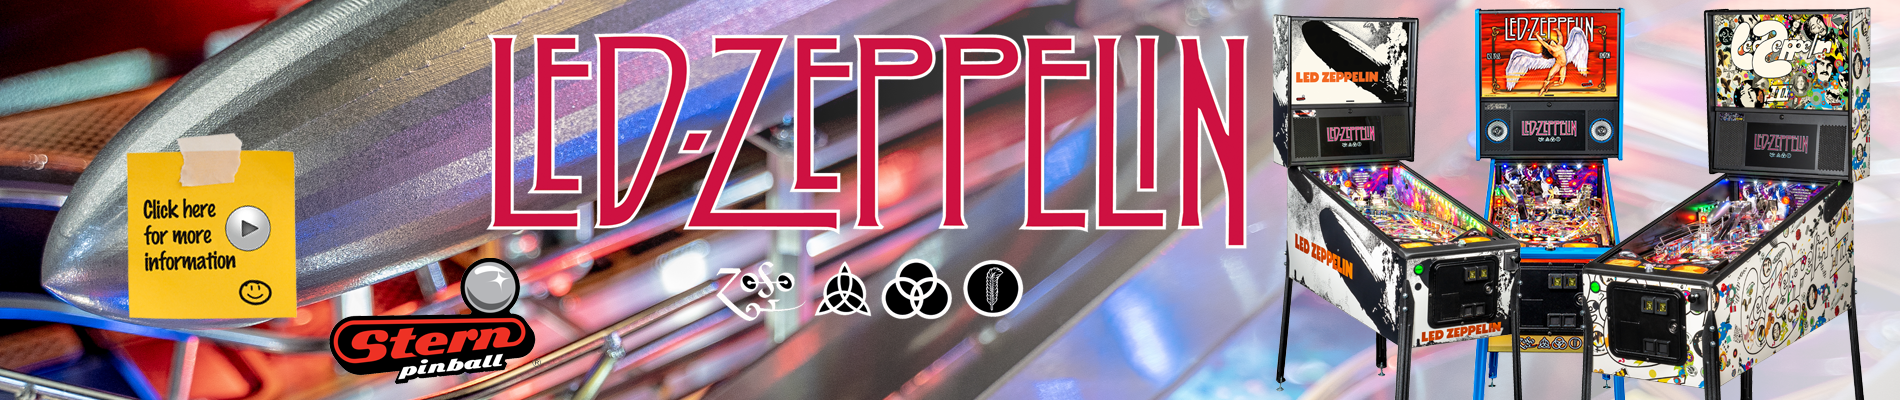 Led Zeppelin by Stern Pinball